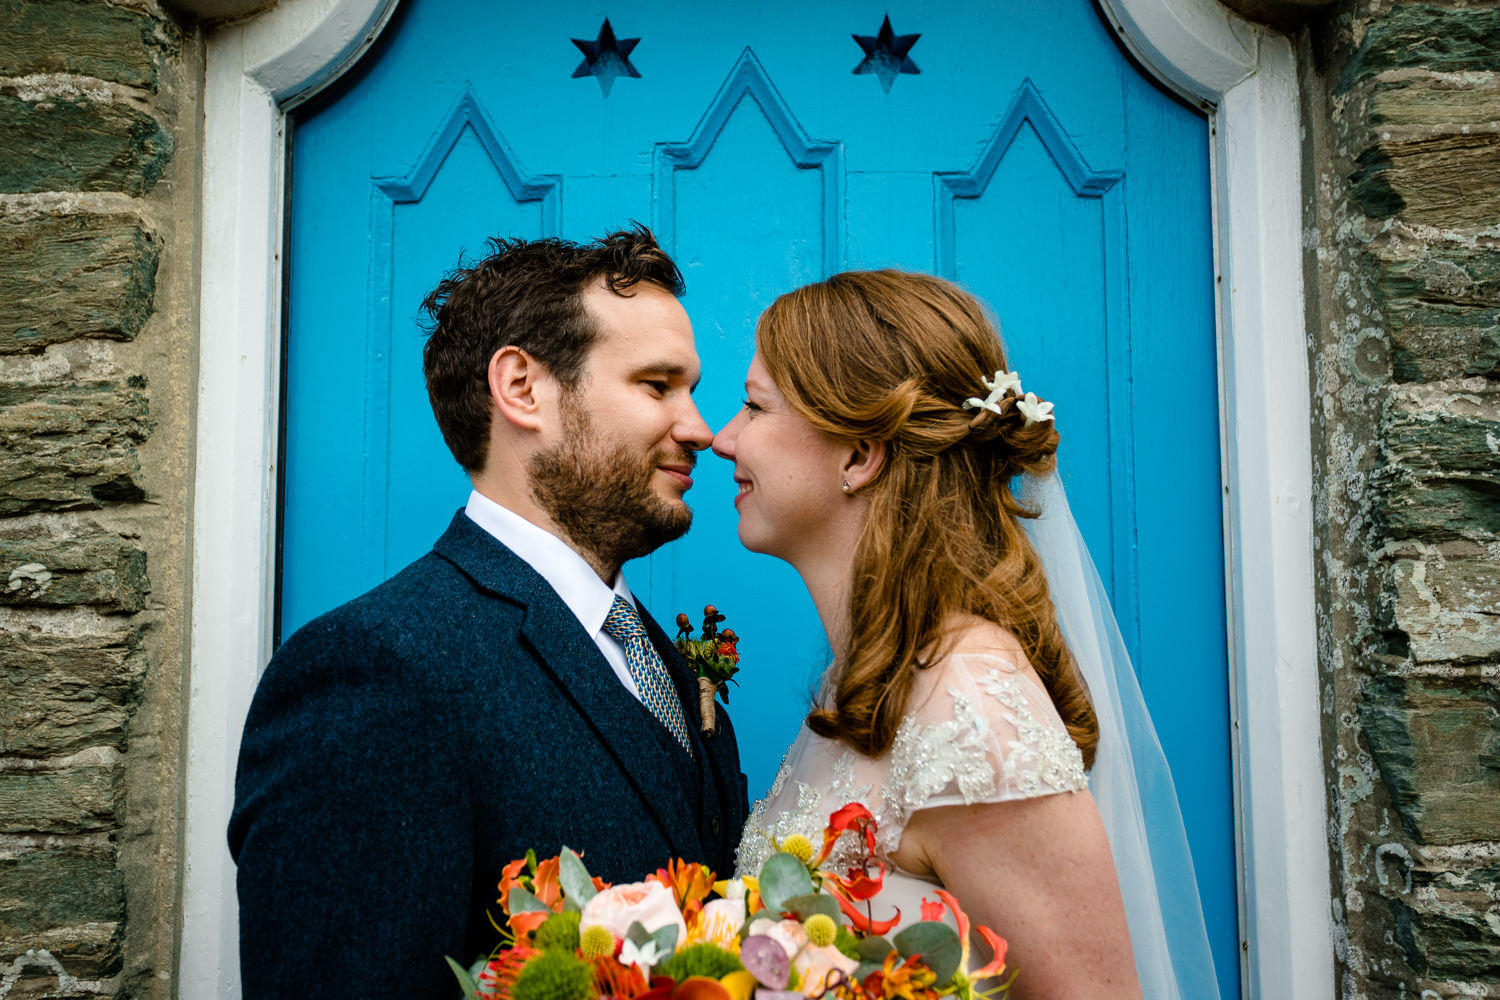 Anglesey wedding photographs of a bride and groom in front of a bright blue doorway in Rhoscolyn